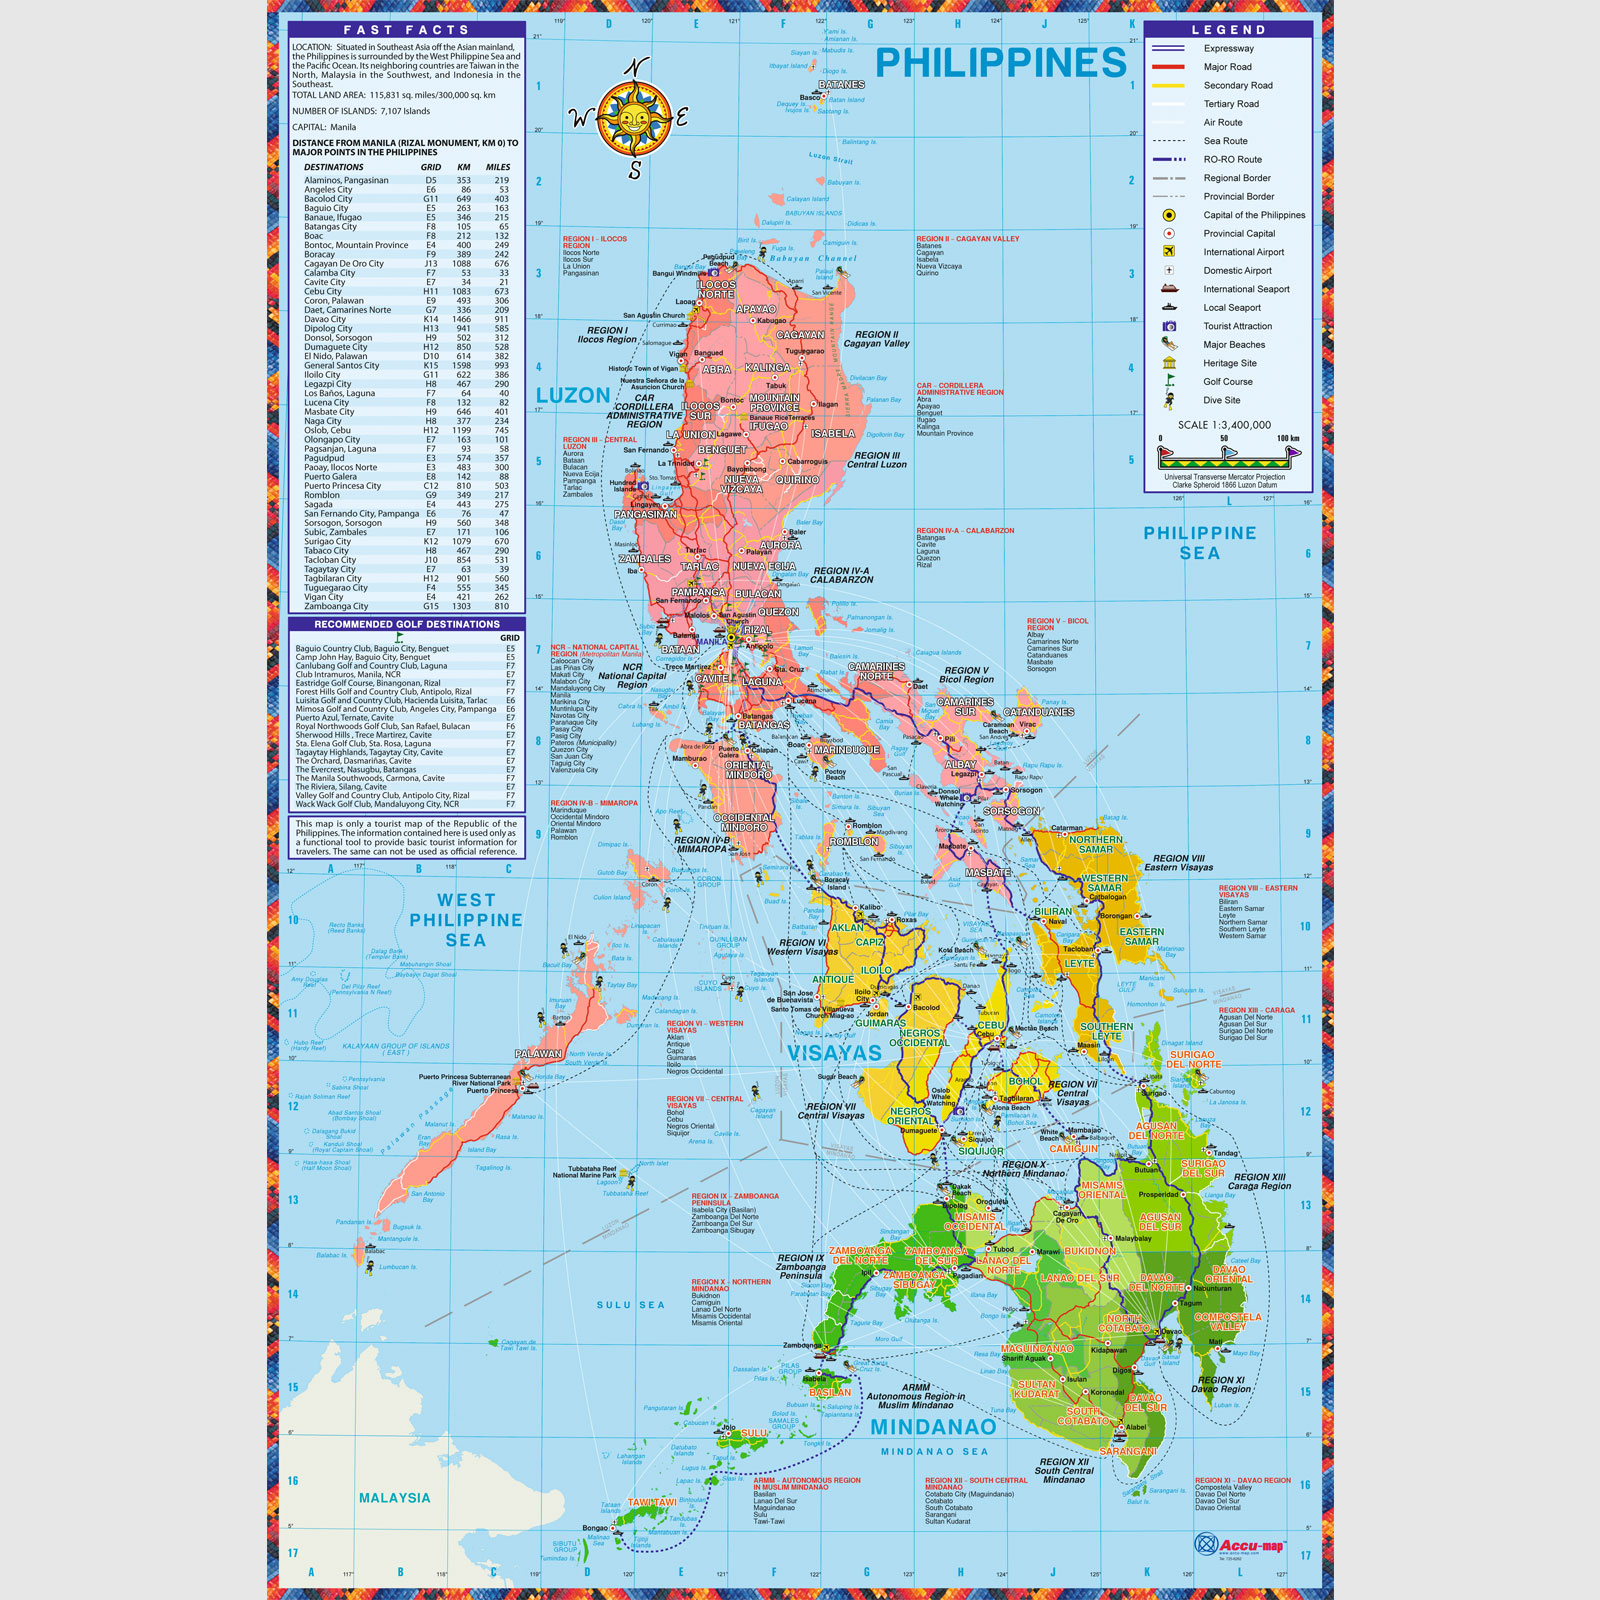 Philippine Products & Services Page - Accu-map, Inc : Working maps